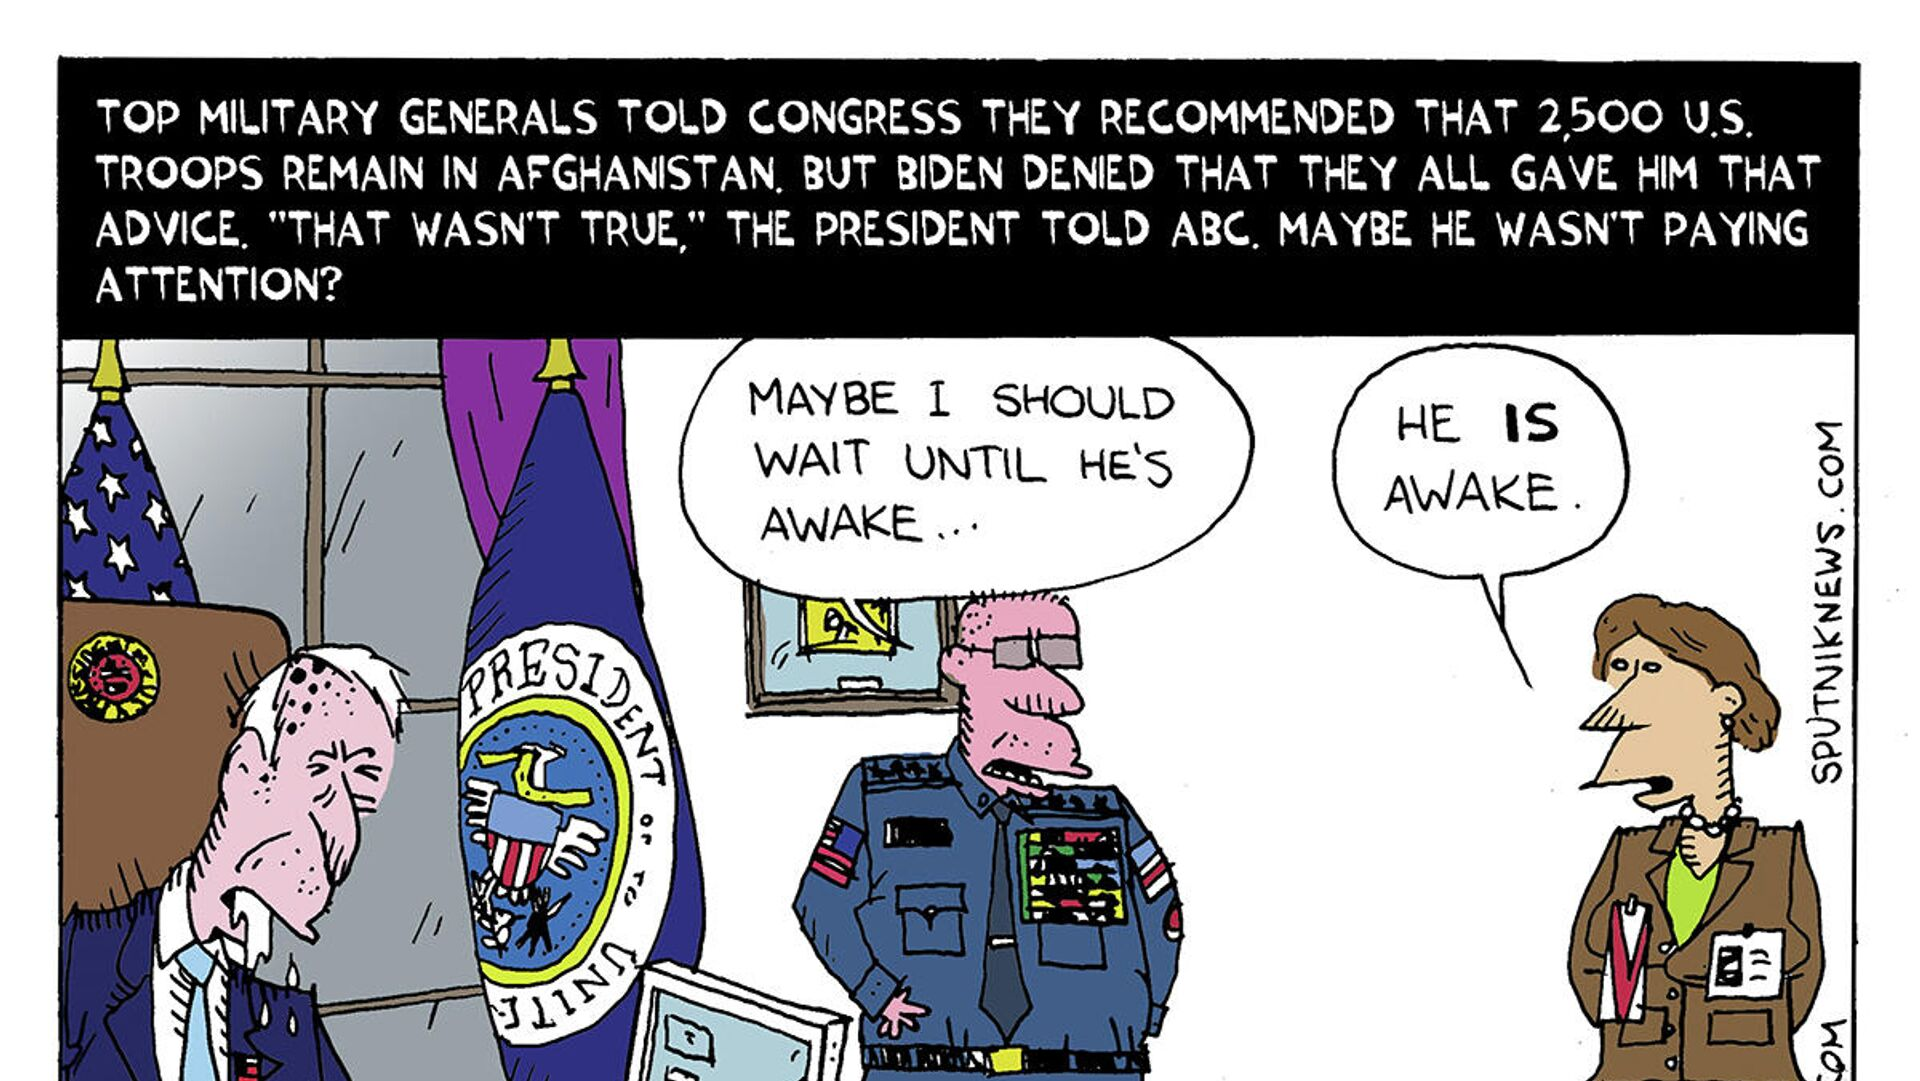 """Top military generals told Congress they recommended that 2,500 U.S. troops remain in Afghanistan. But Biden denied that they all gave him that advice. """"That wasn't true,"""" the president told ABC. Maybe he wasn't paying attention? - Sputnik International, 1920, 28.09.2021"""